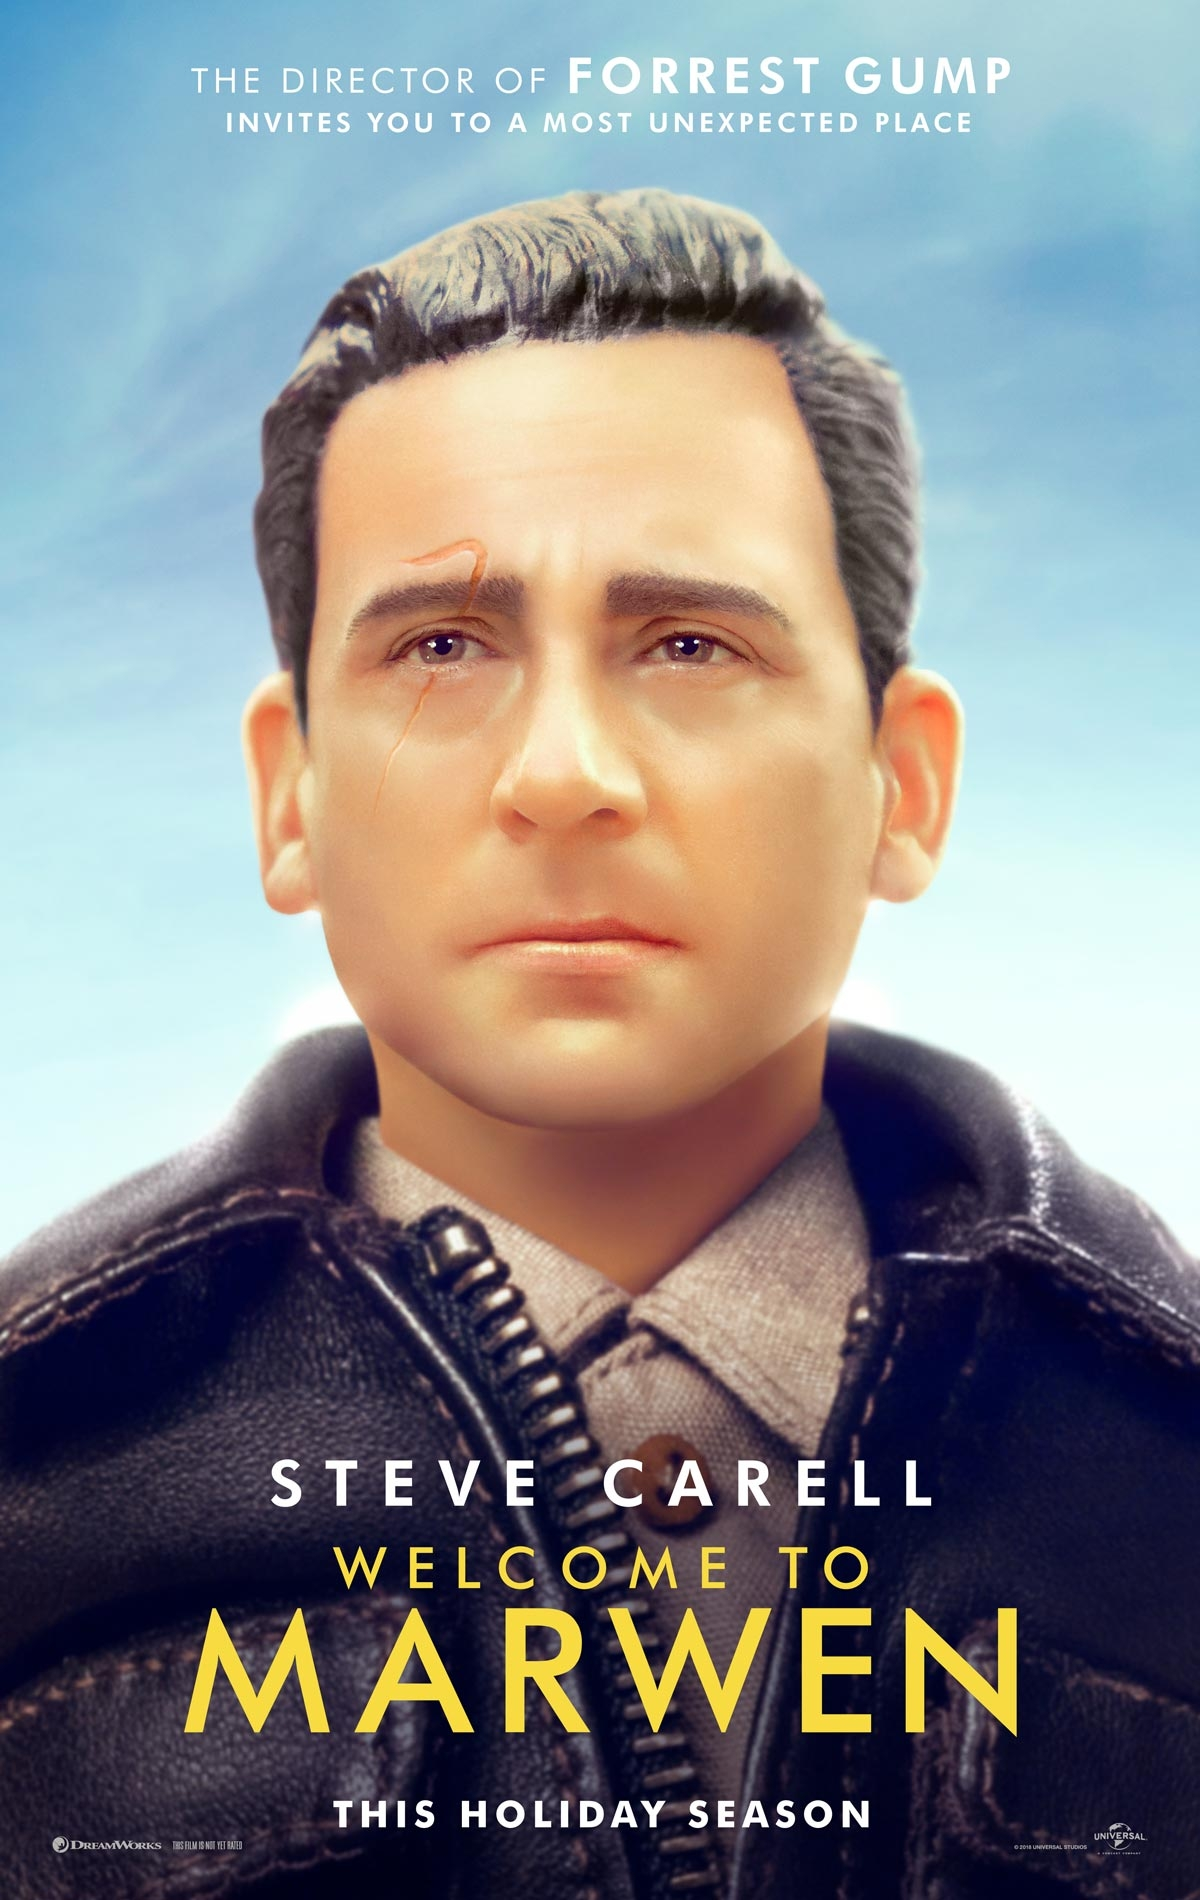 Welcome to Marwen offical poster